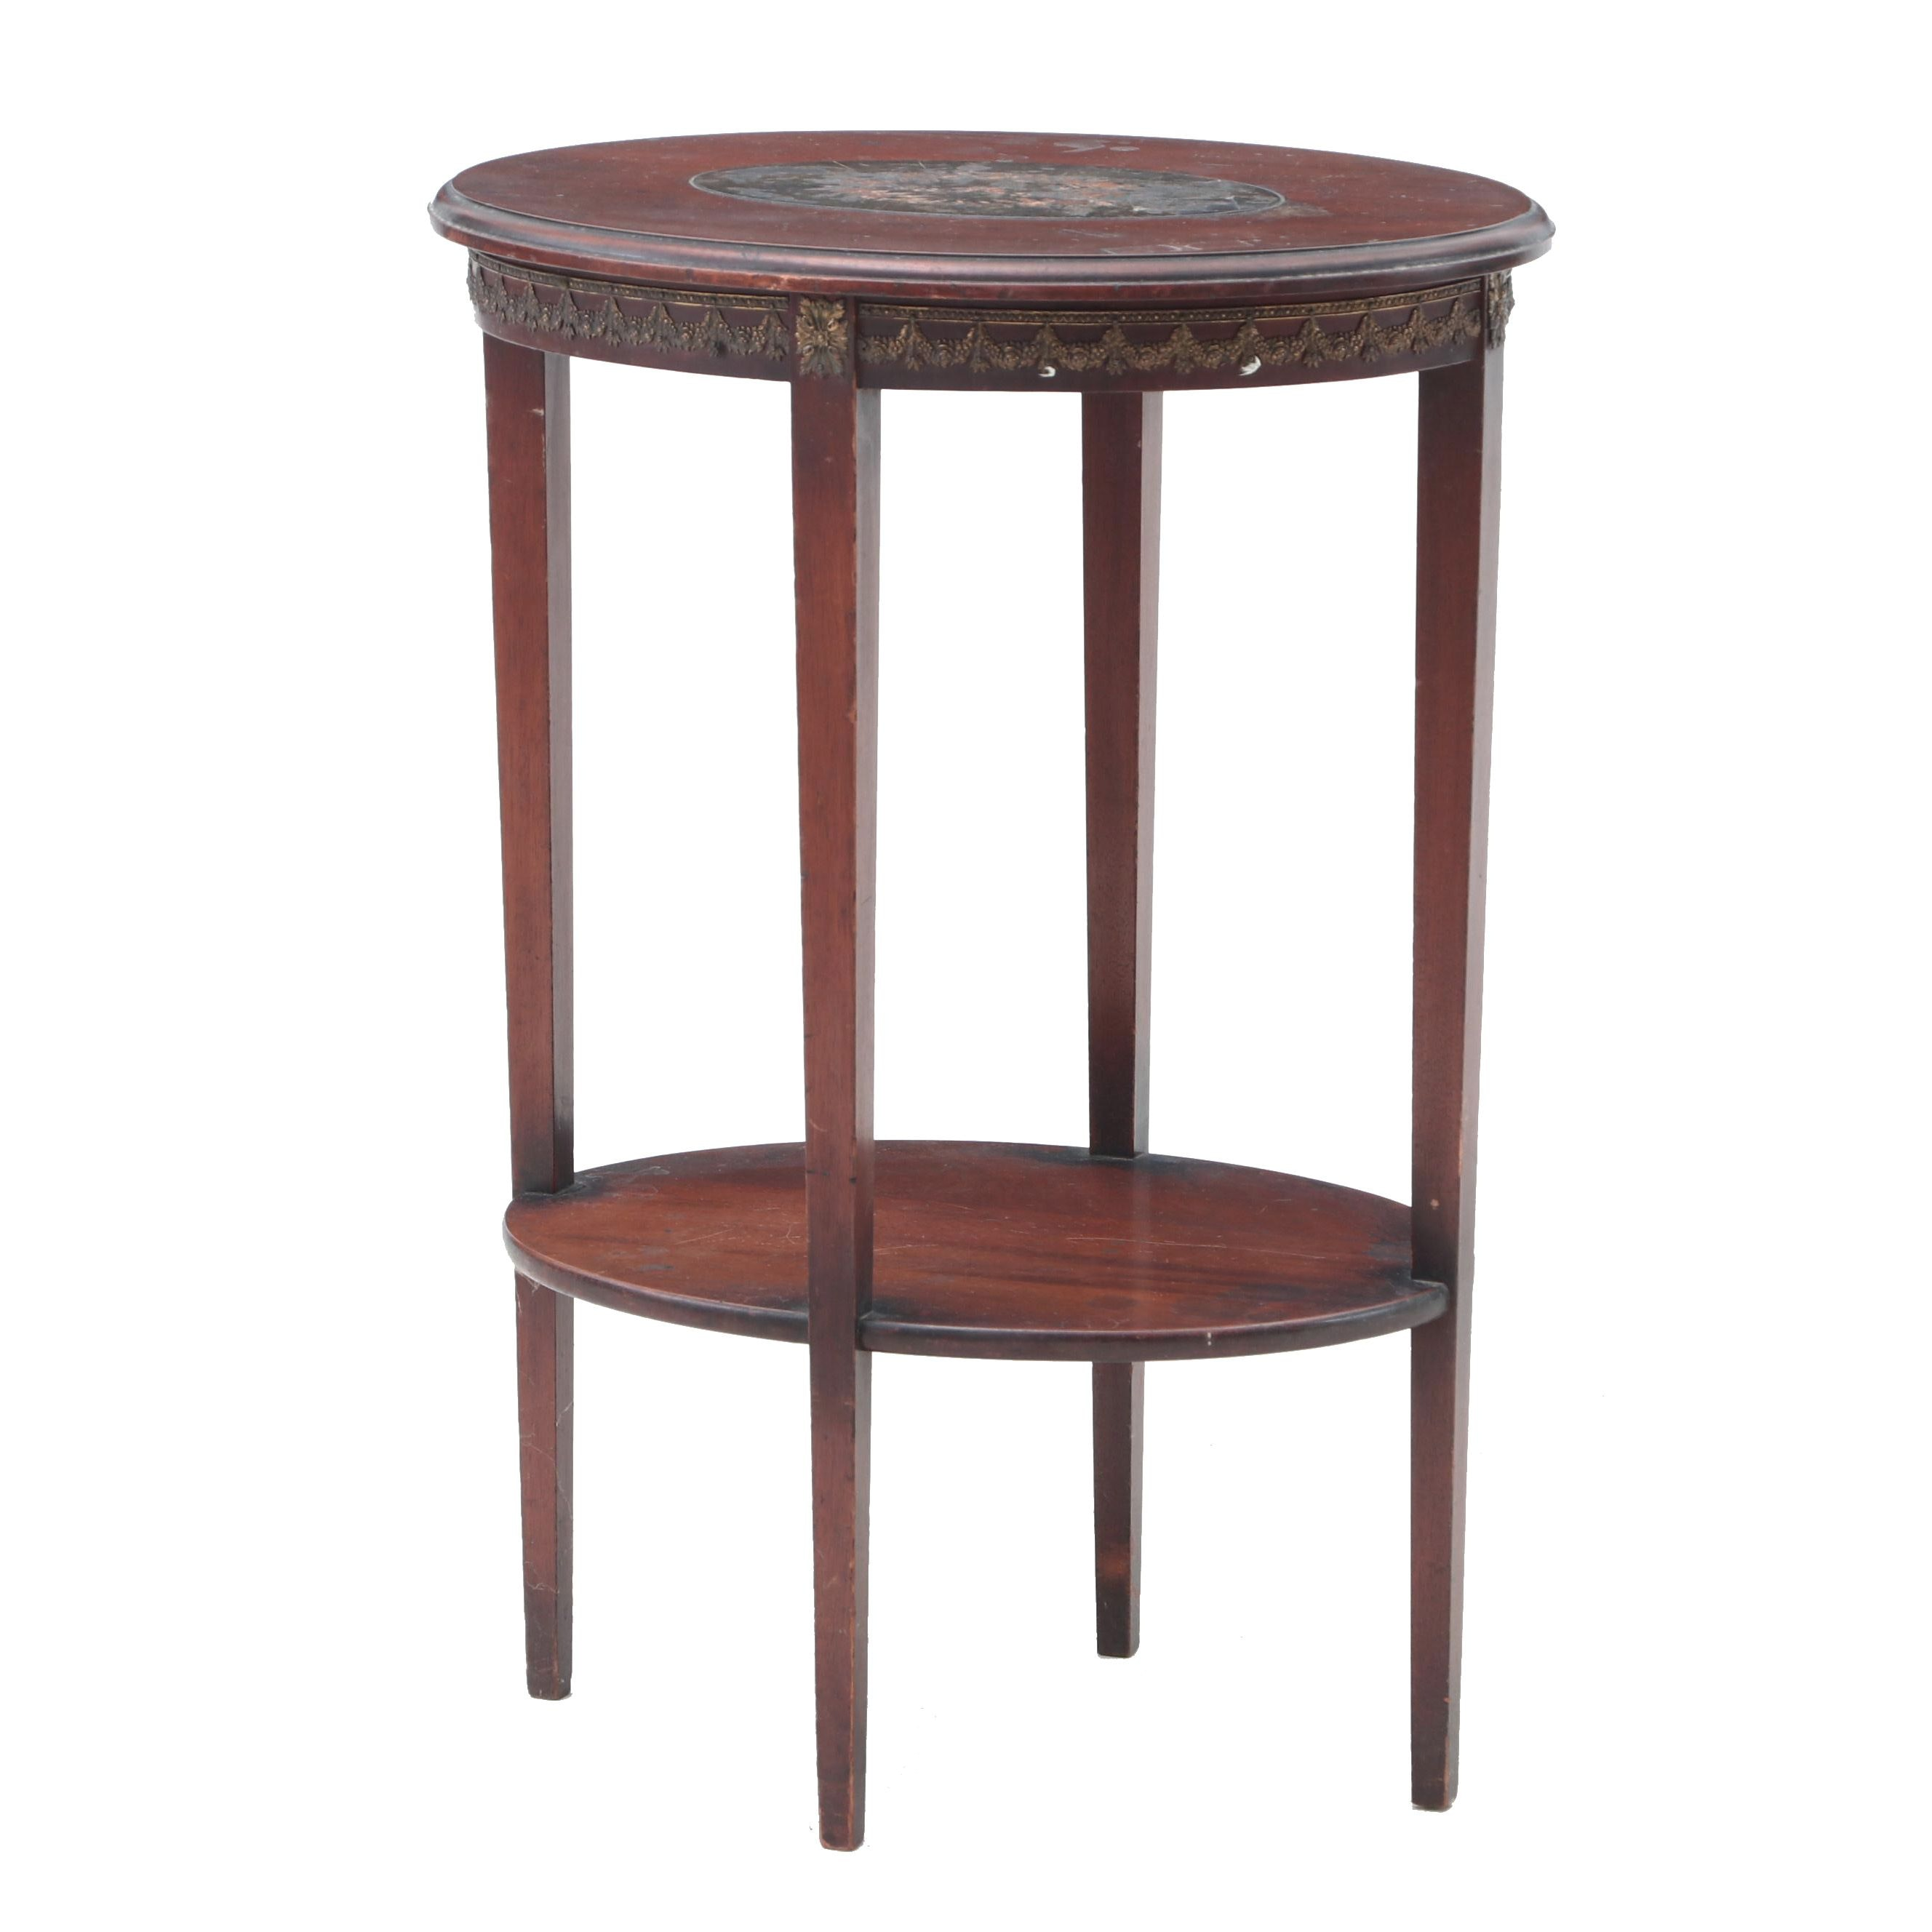 Early-20th Century Edwardian Occasional Table with Marquetry Inlay in Mahogany